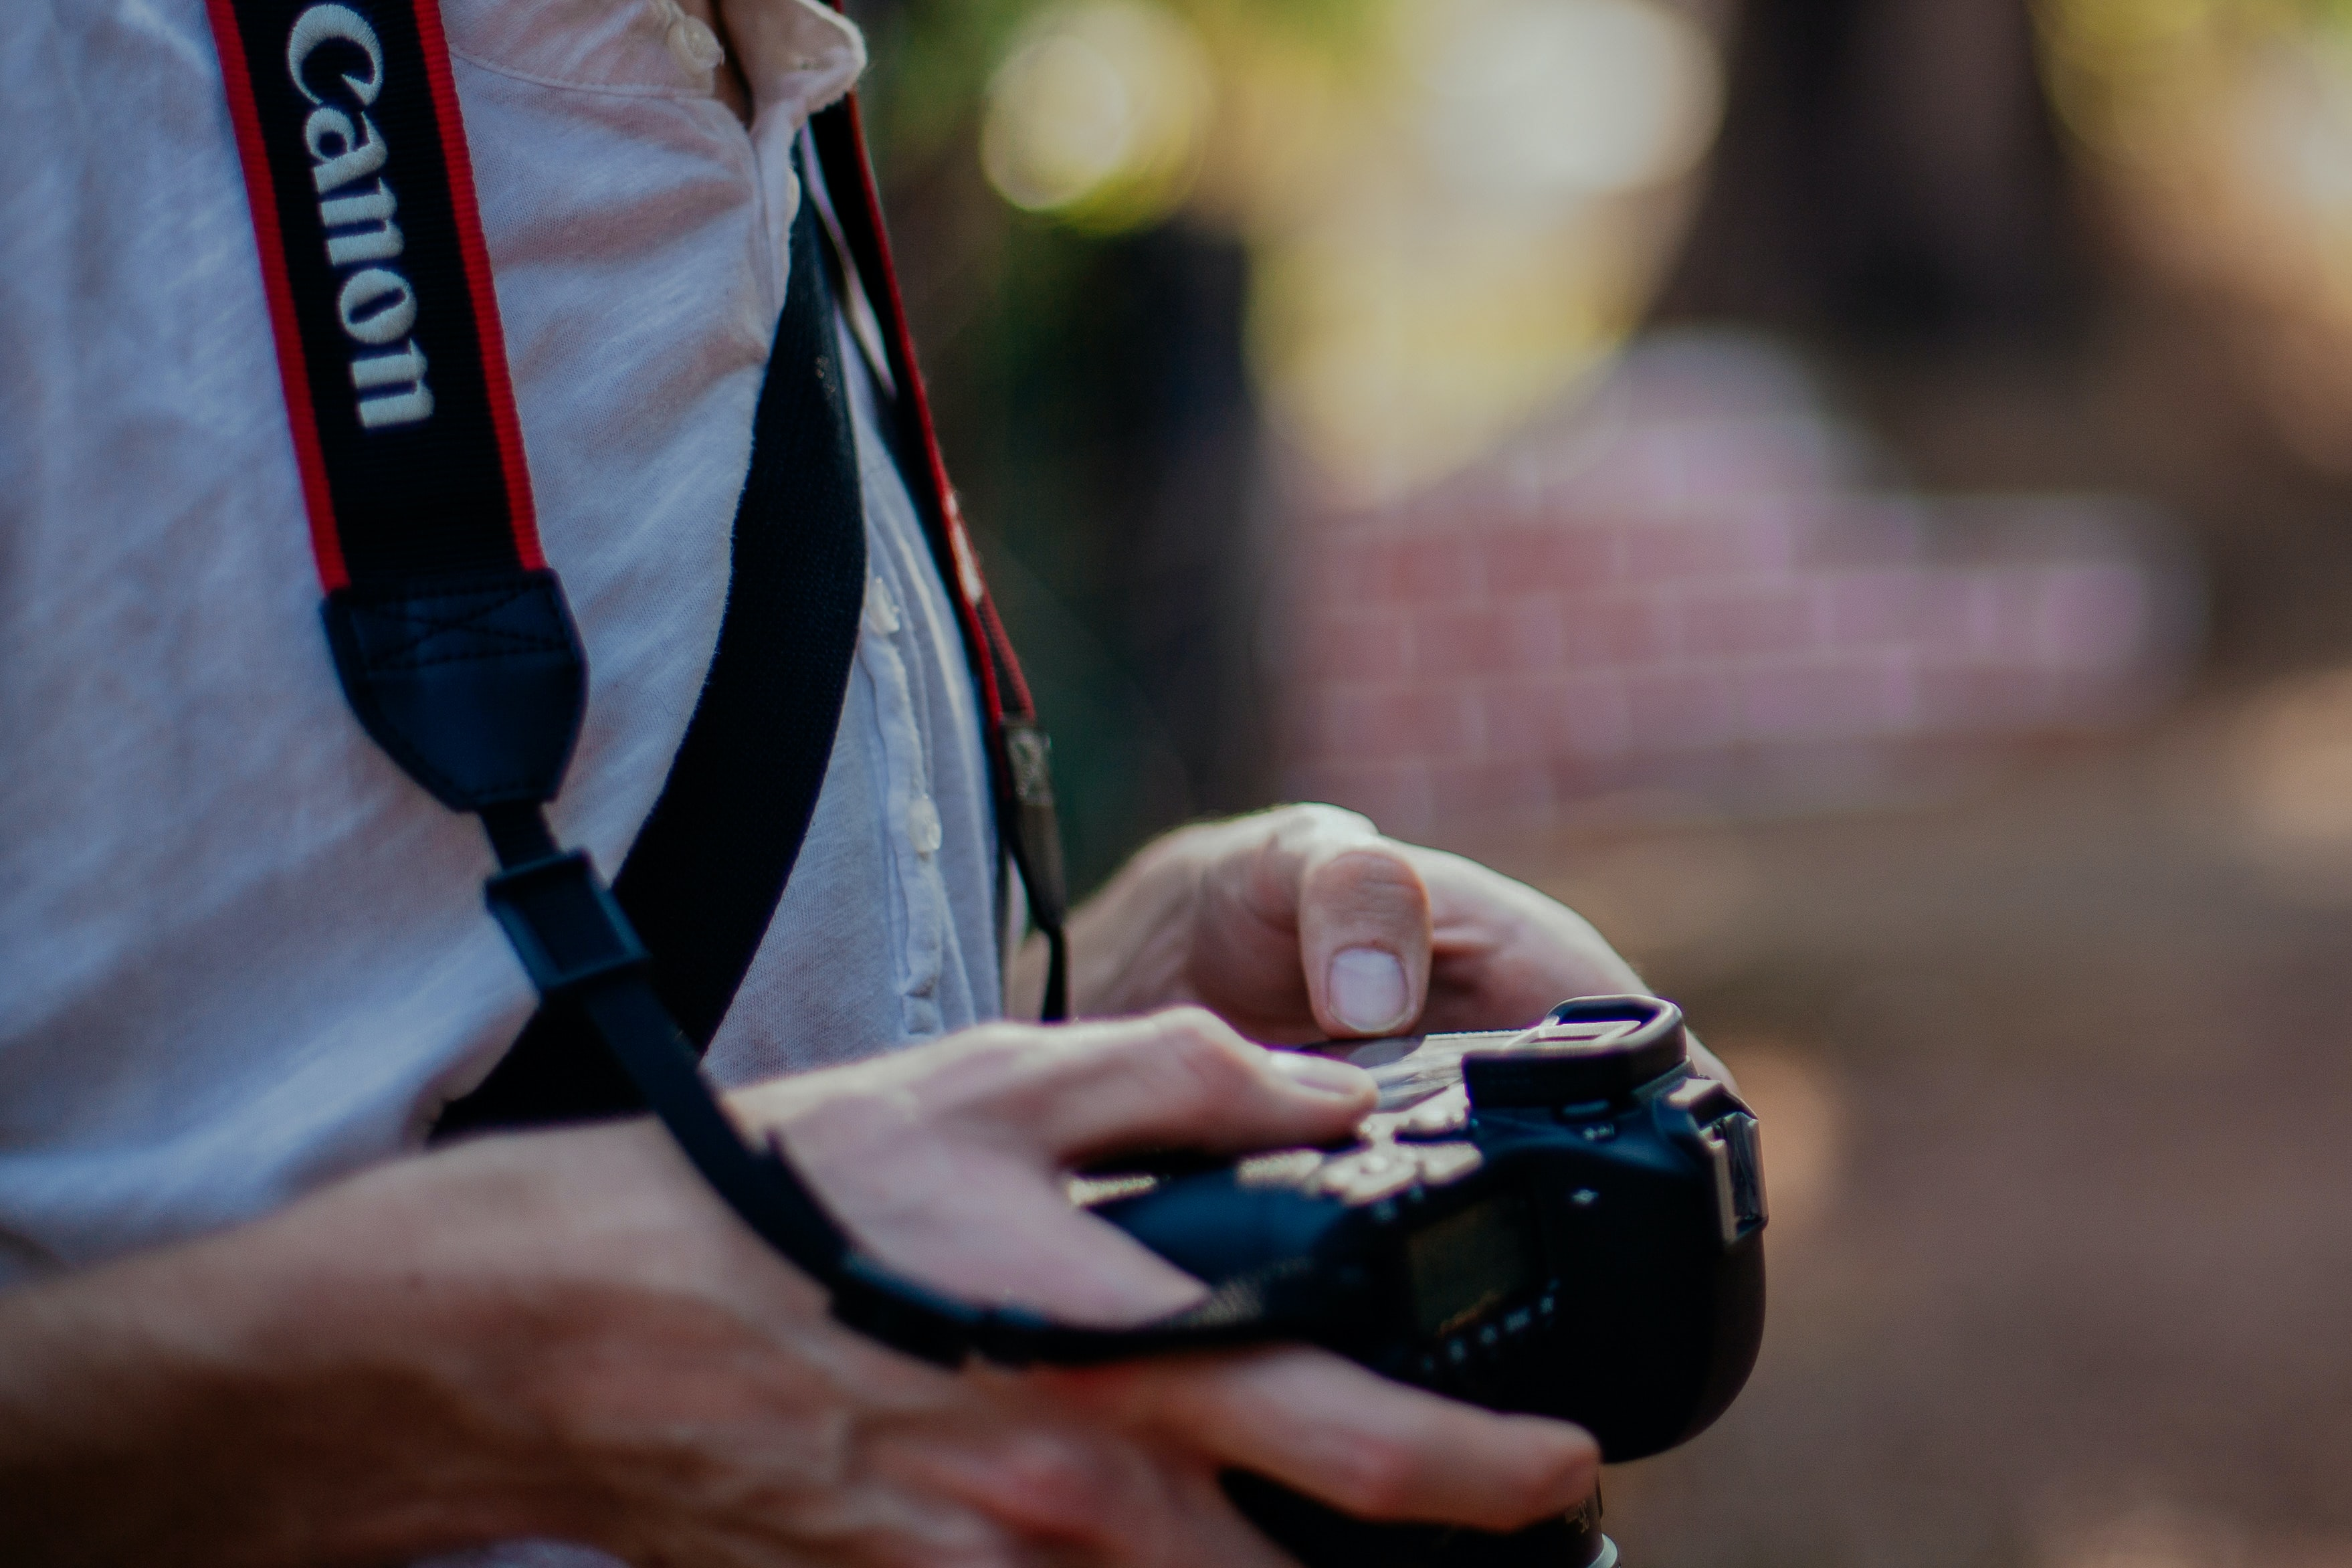 A photographer looks down at a Canon camera held around their neck by a strap